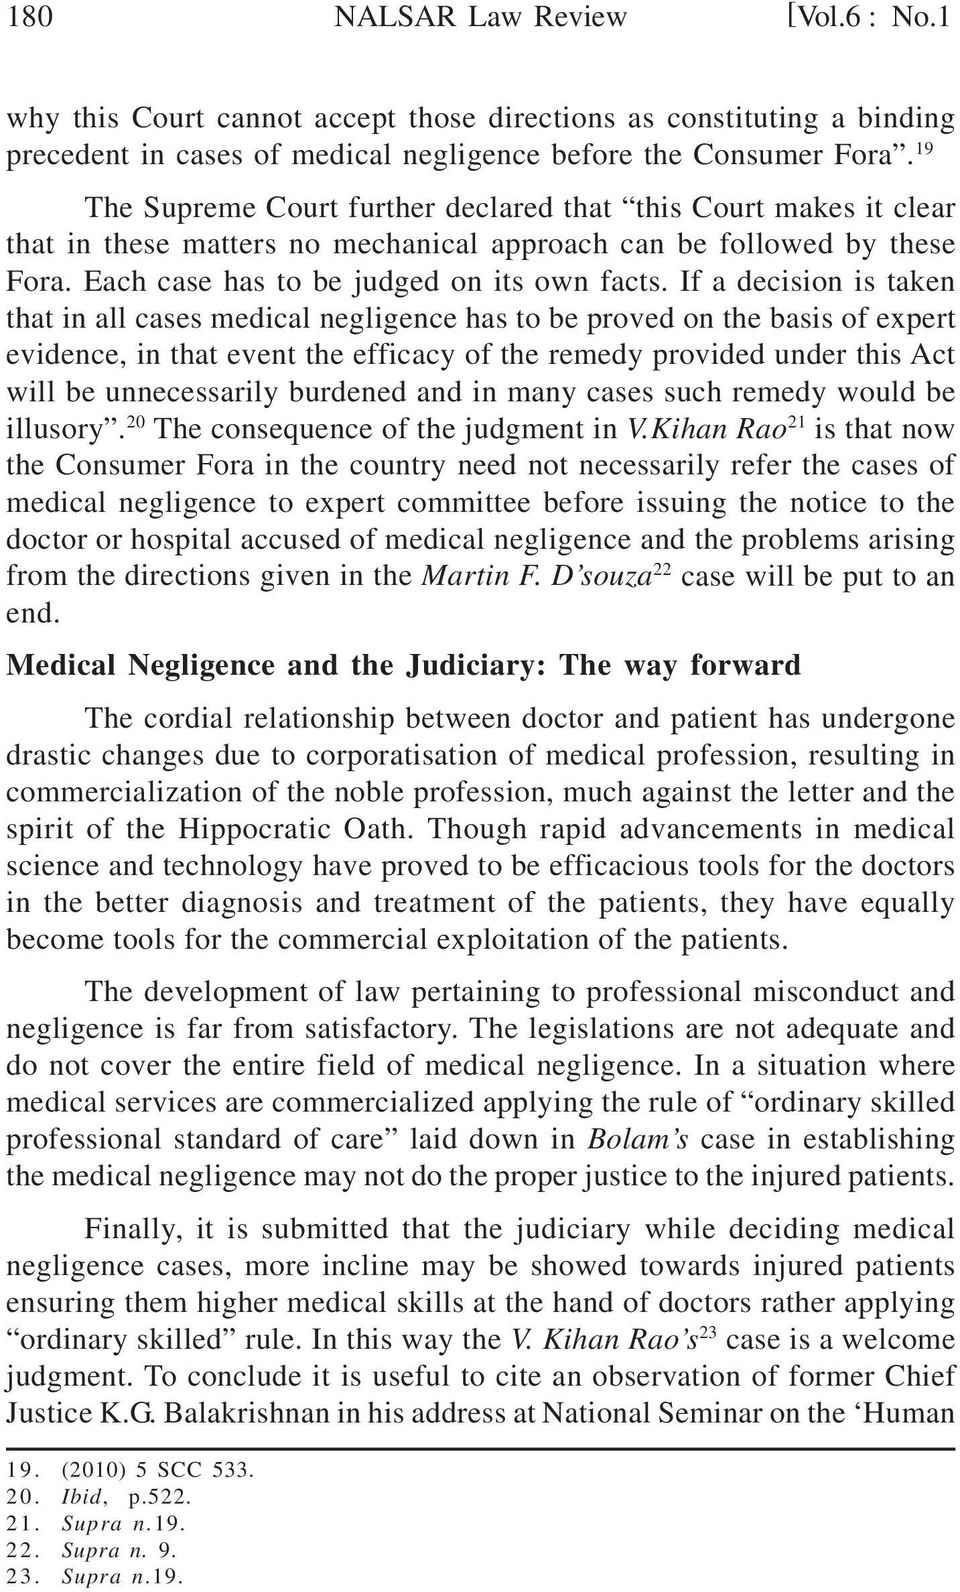 If a decision is taken that in all cases medical negligence has to be proved on the basis of expert evidence, in that event the efficacy of the remedy provided under this Act will be unnecessarily